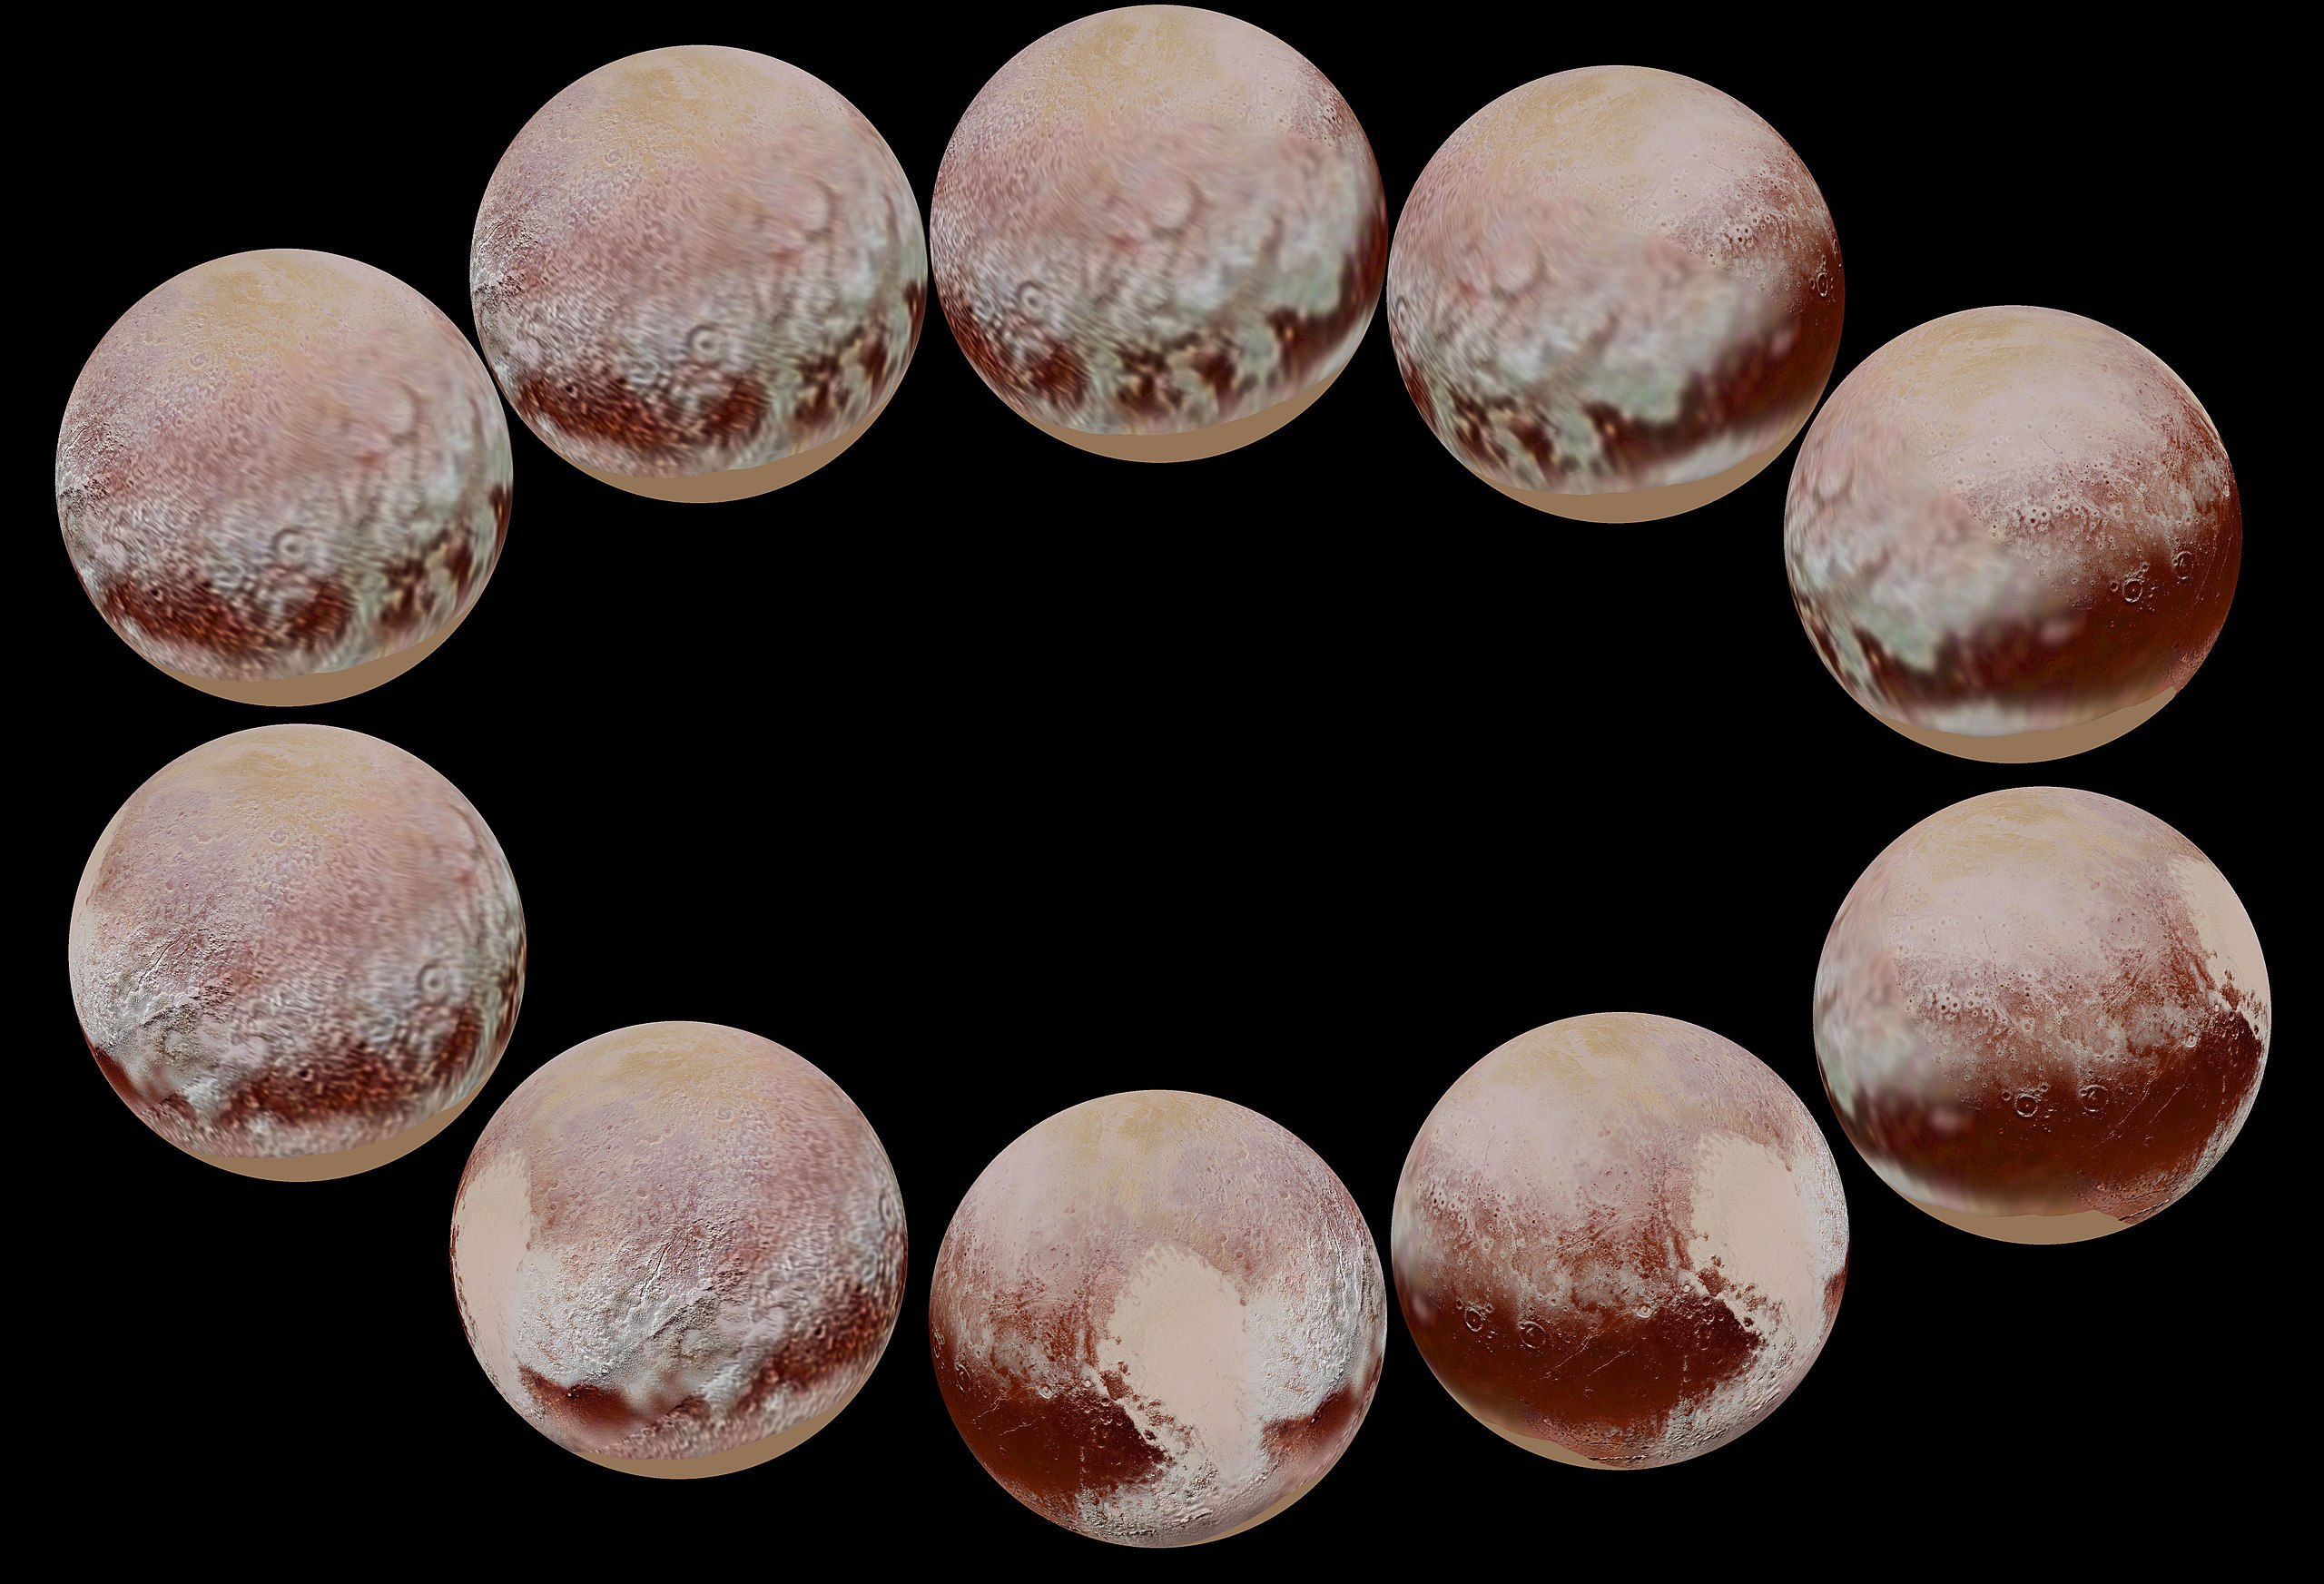 Extended Winter Could Cause Pluto's Atmosphere To Freeze And Collapse By 2030